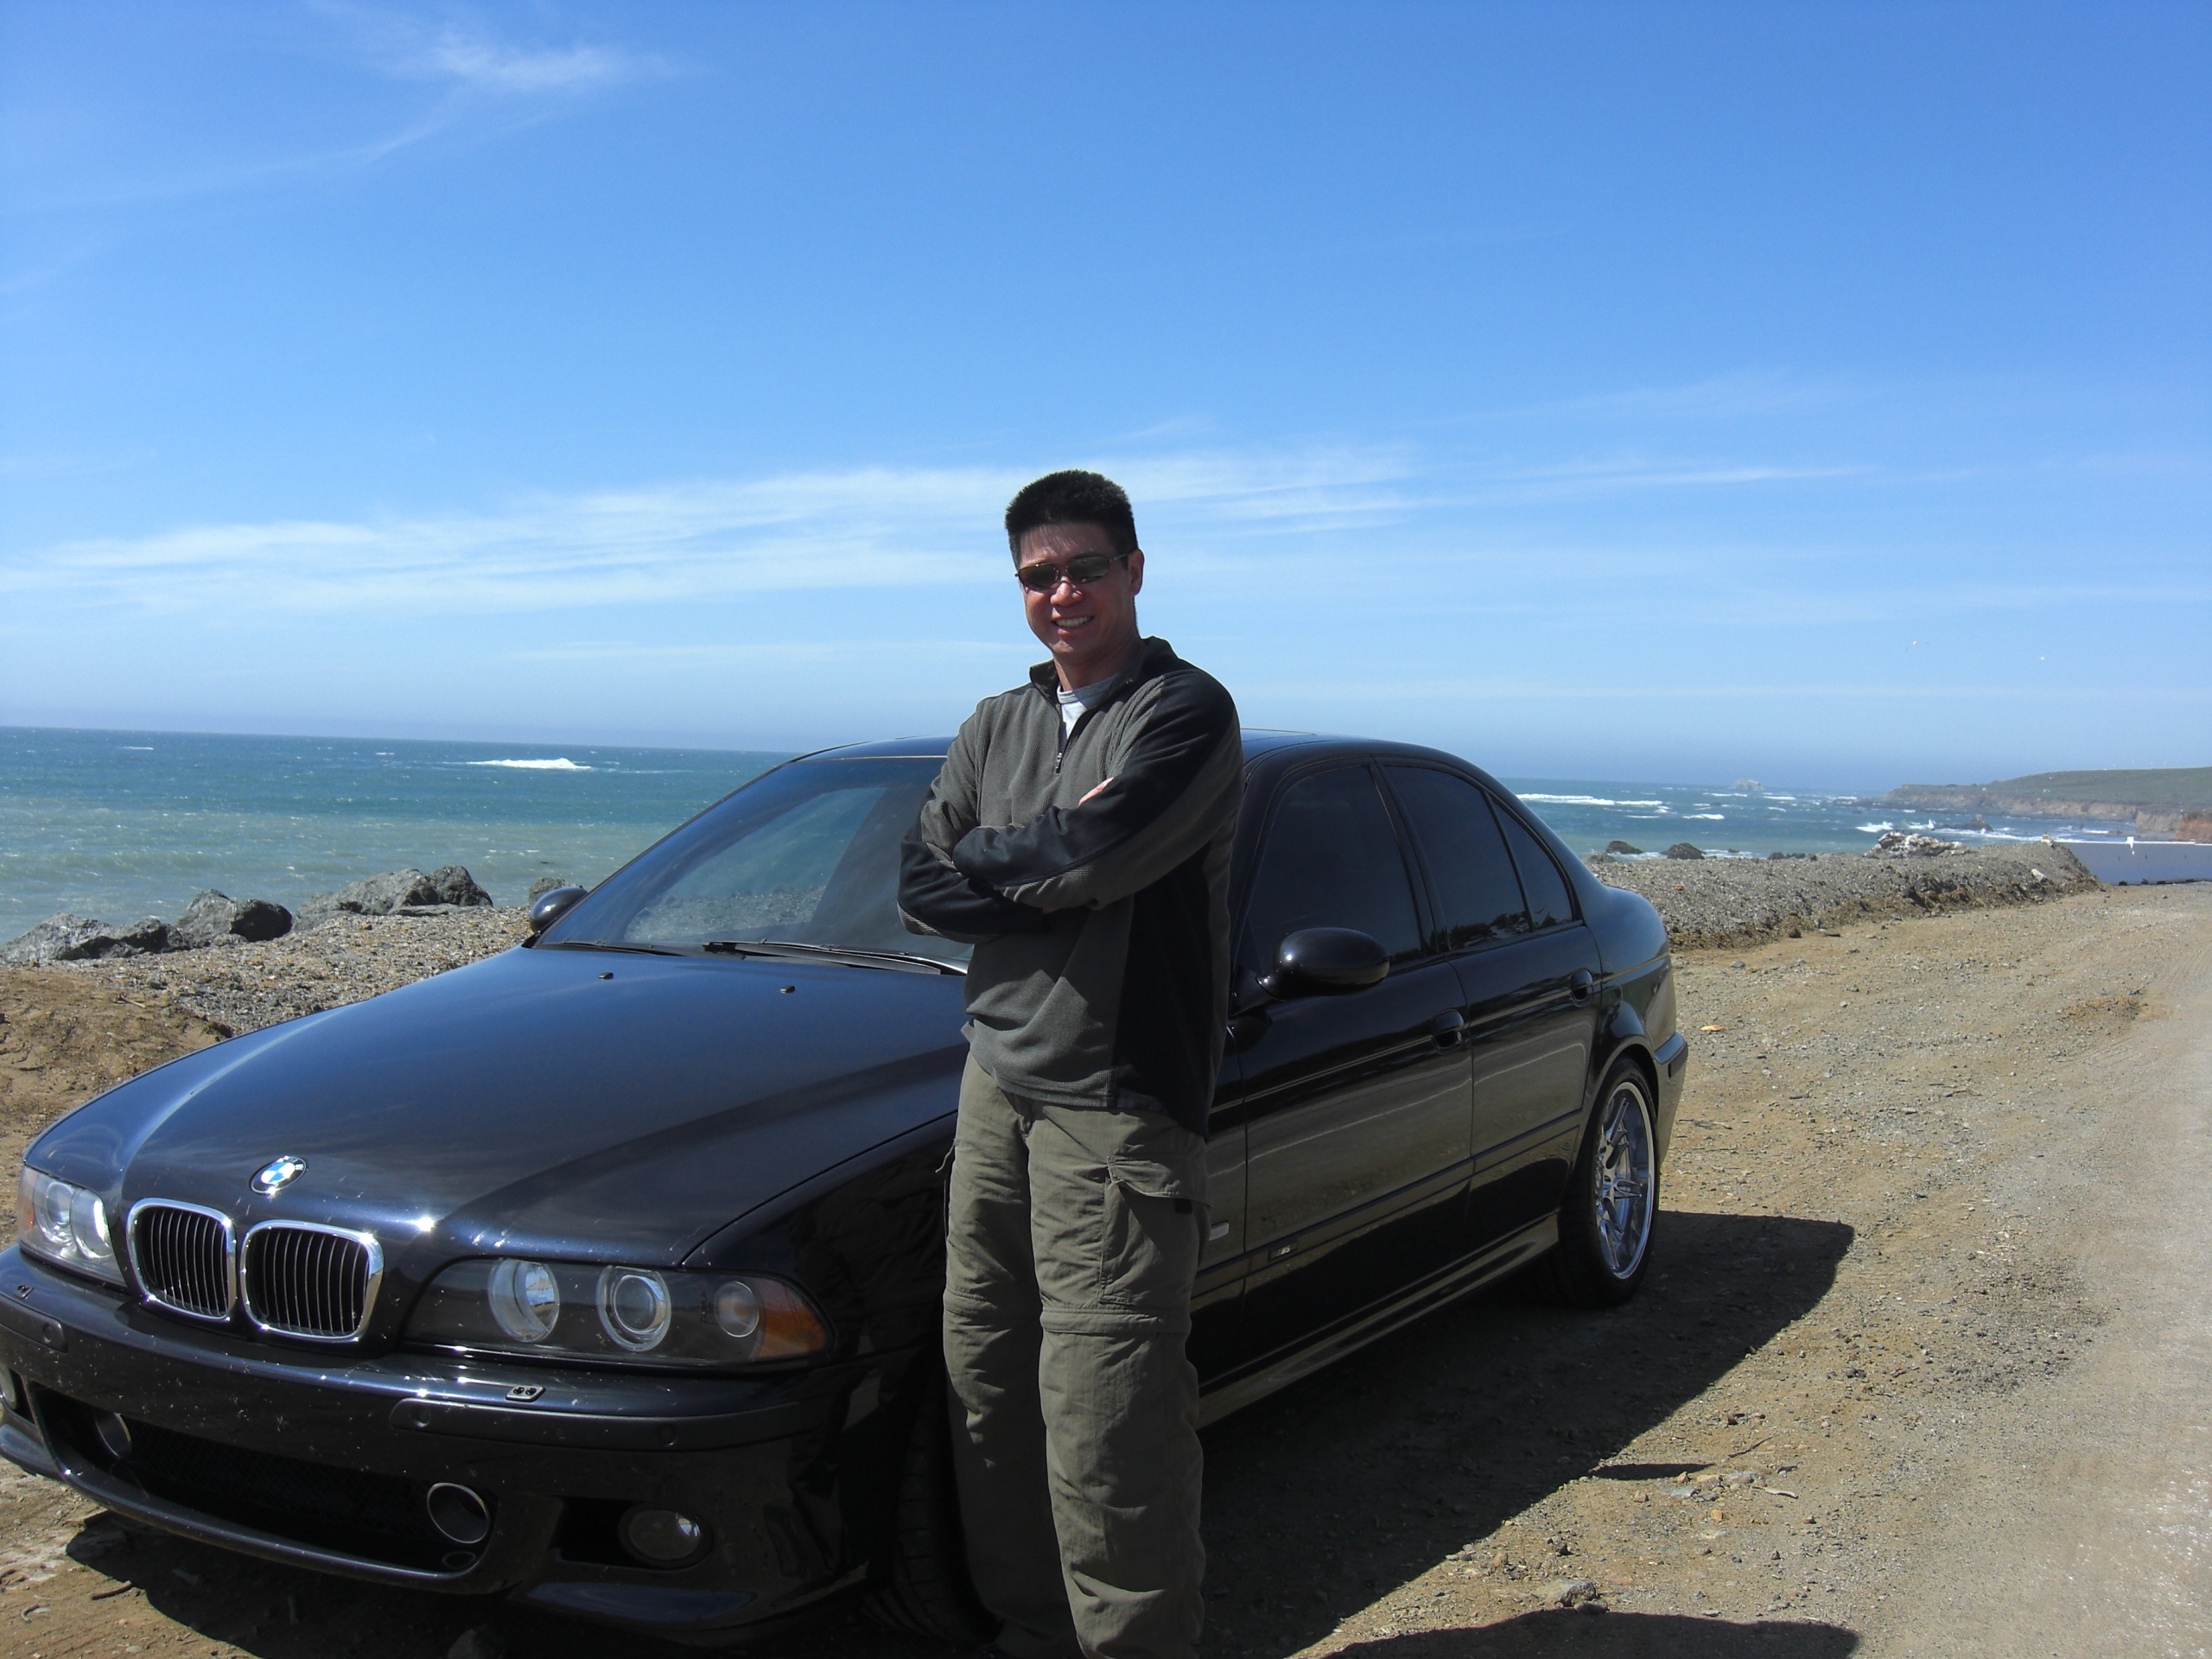 Pictures of You and your M5-cimg0115.jpg